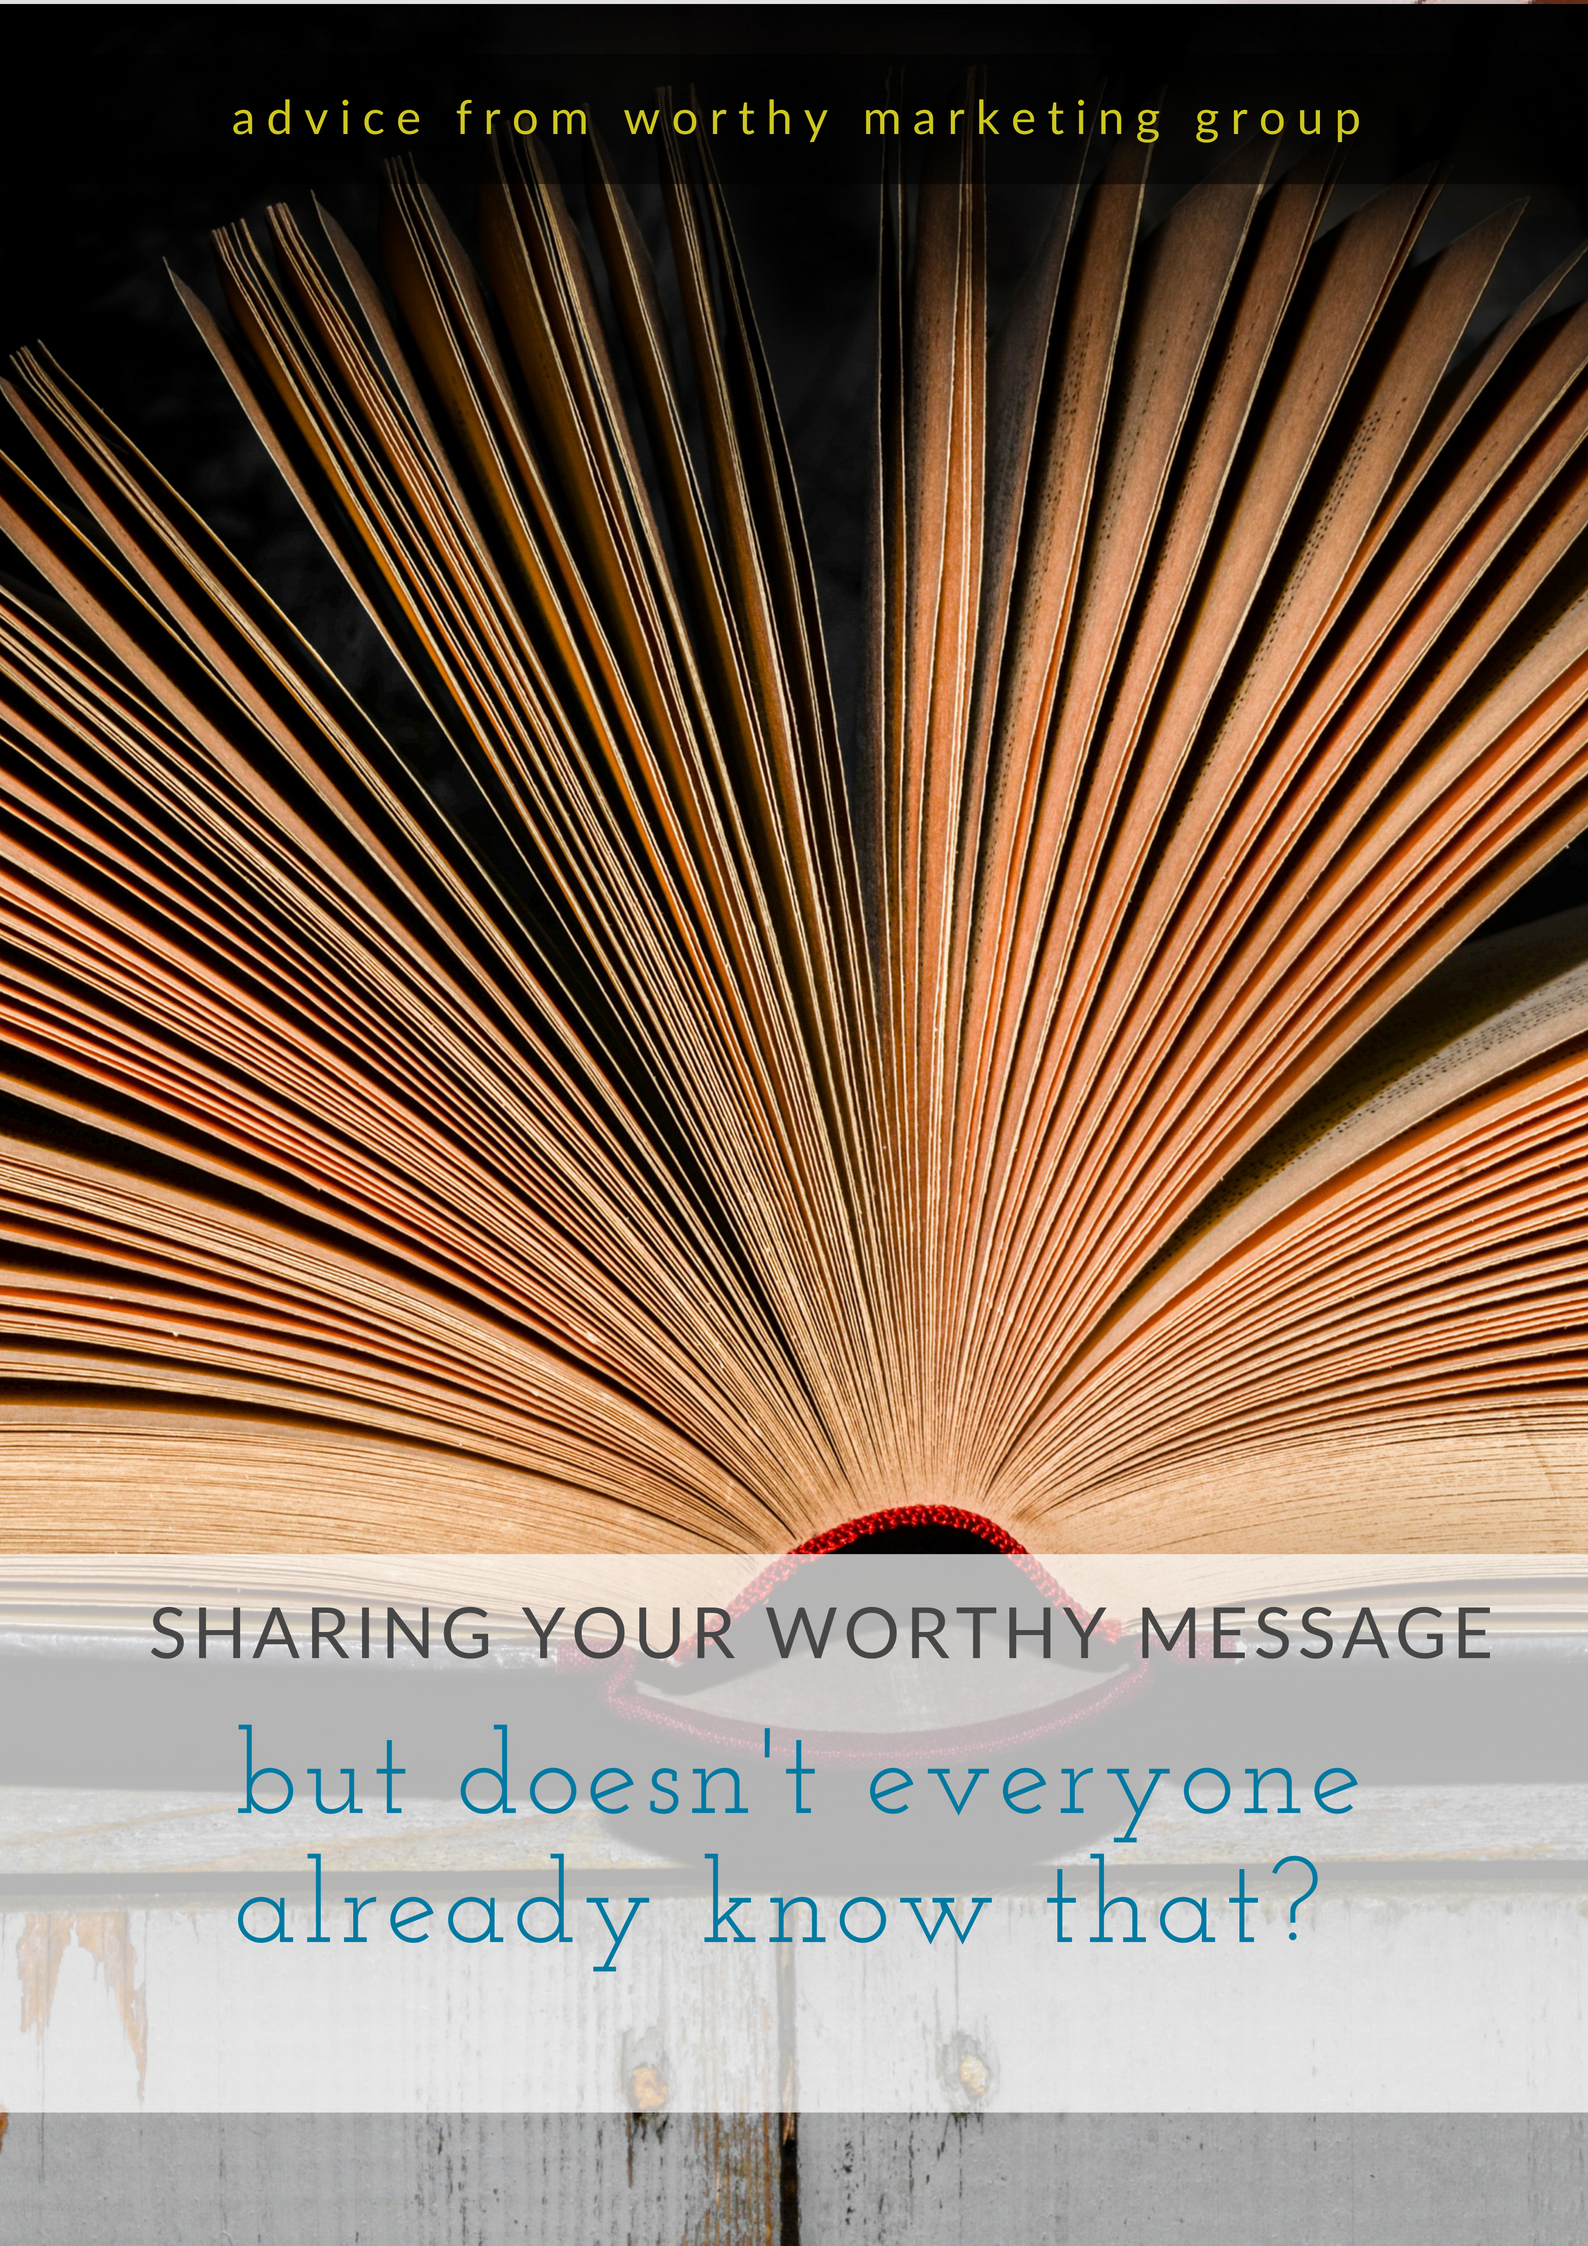 But Doesn't Everyone Already Know This? Sharing Your WORTHY Message | The Worthy Marketing Group Blog